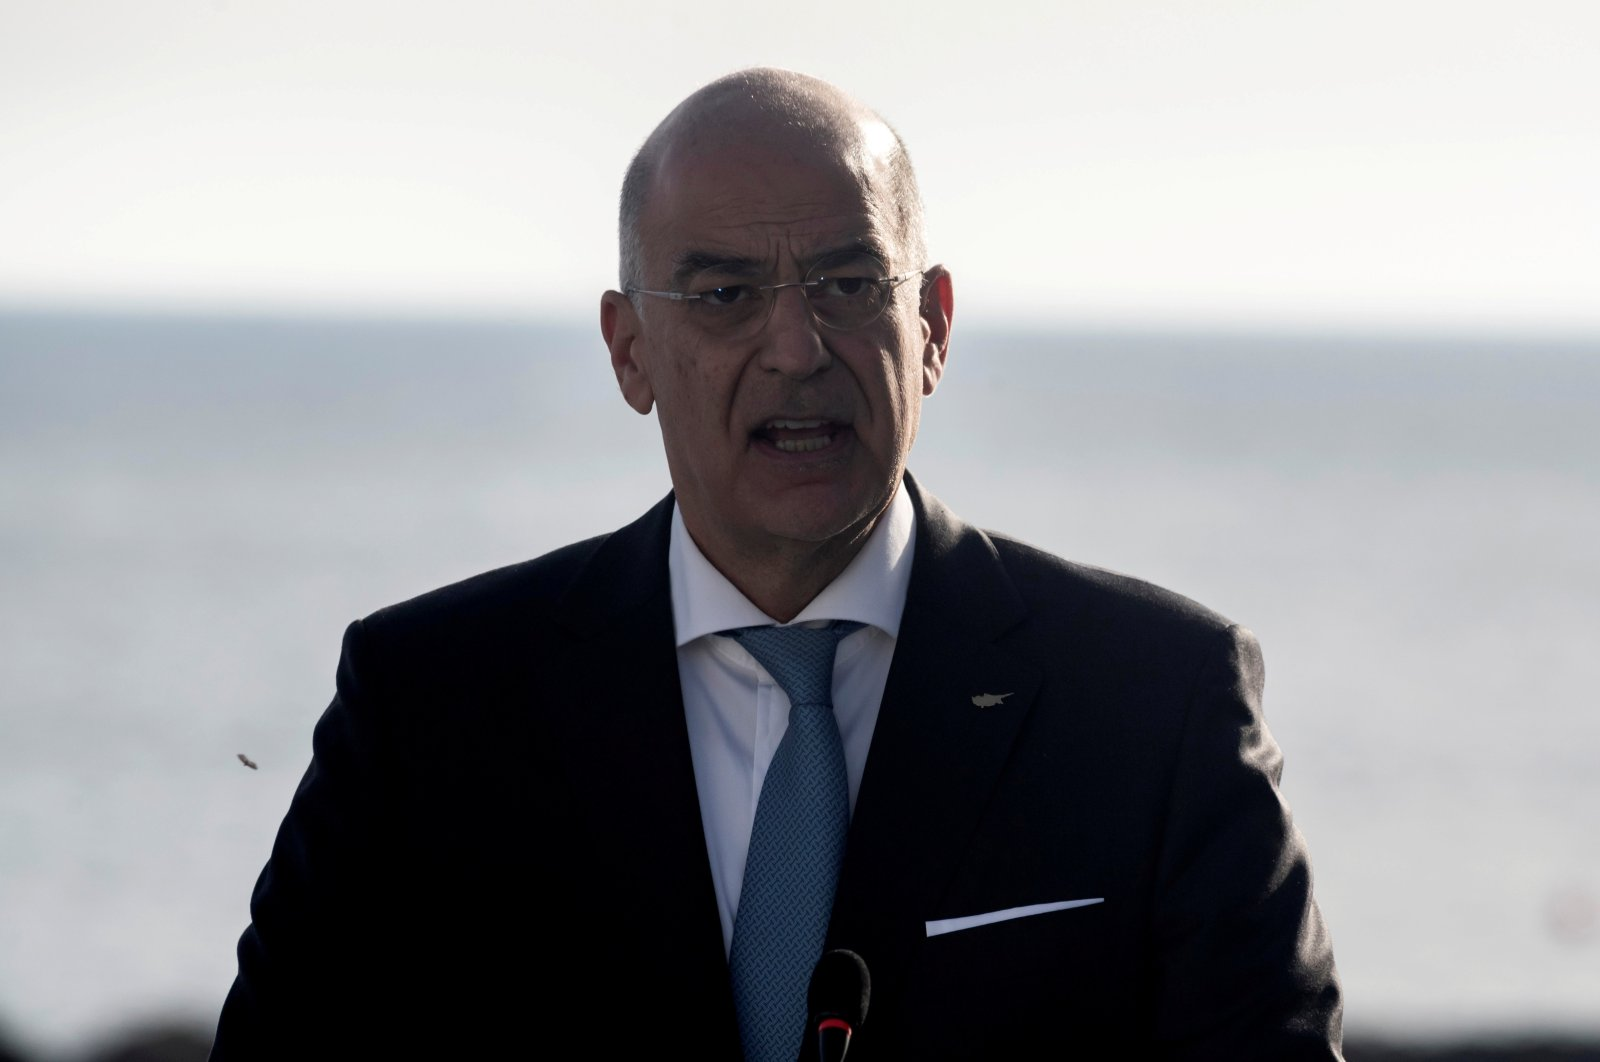 Greek Foreign Minister Nikos Dendias speaks during a news conference in Paphos, Greek Cyprus, April 16, 2021. (REUTERS Photo)